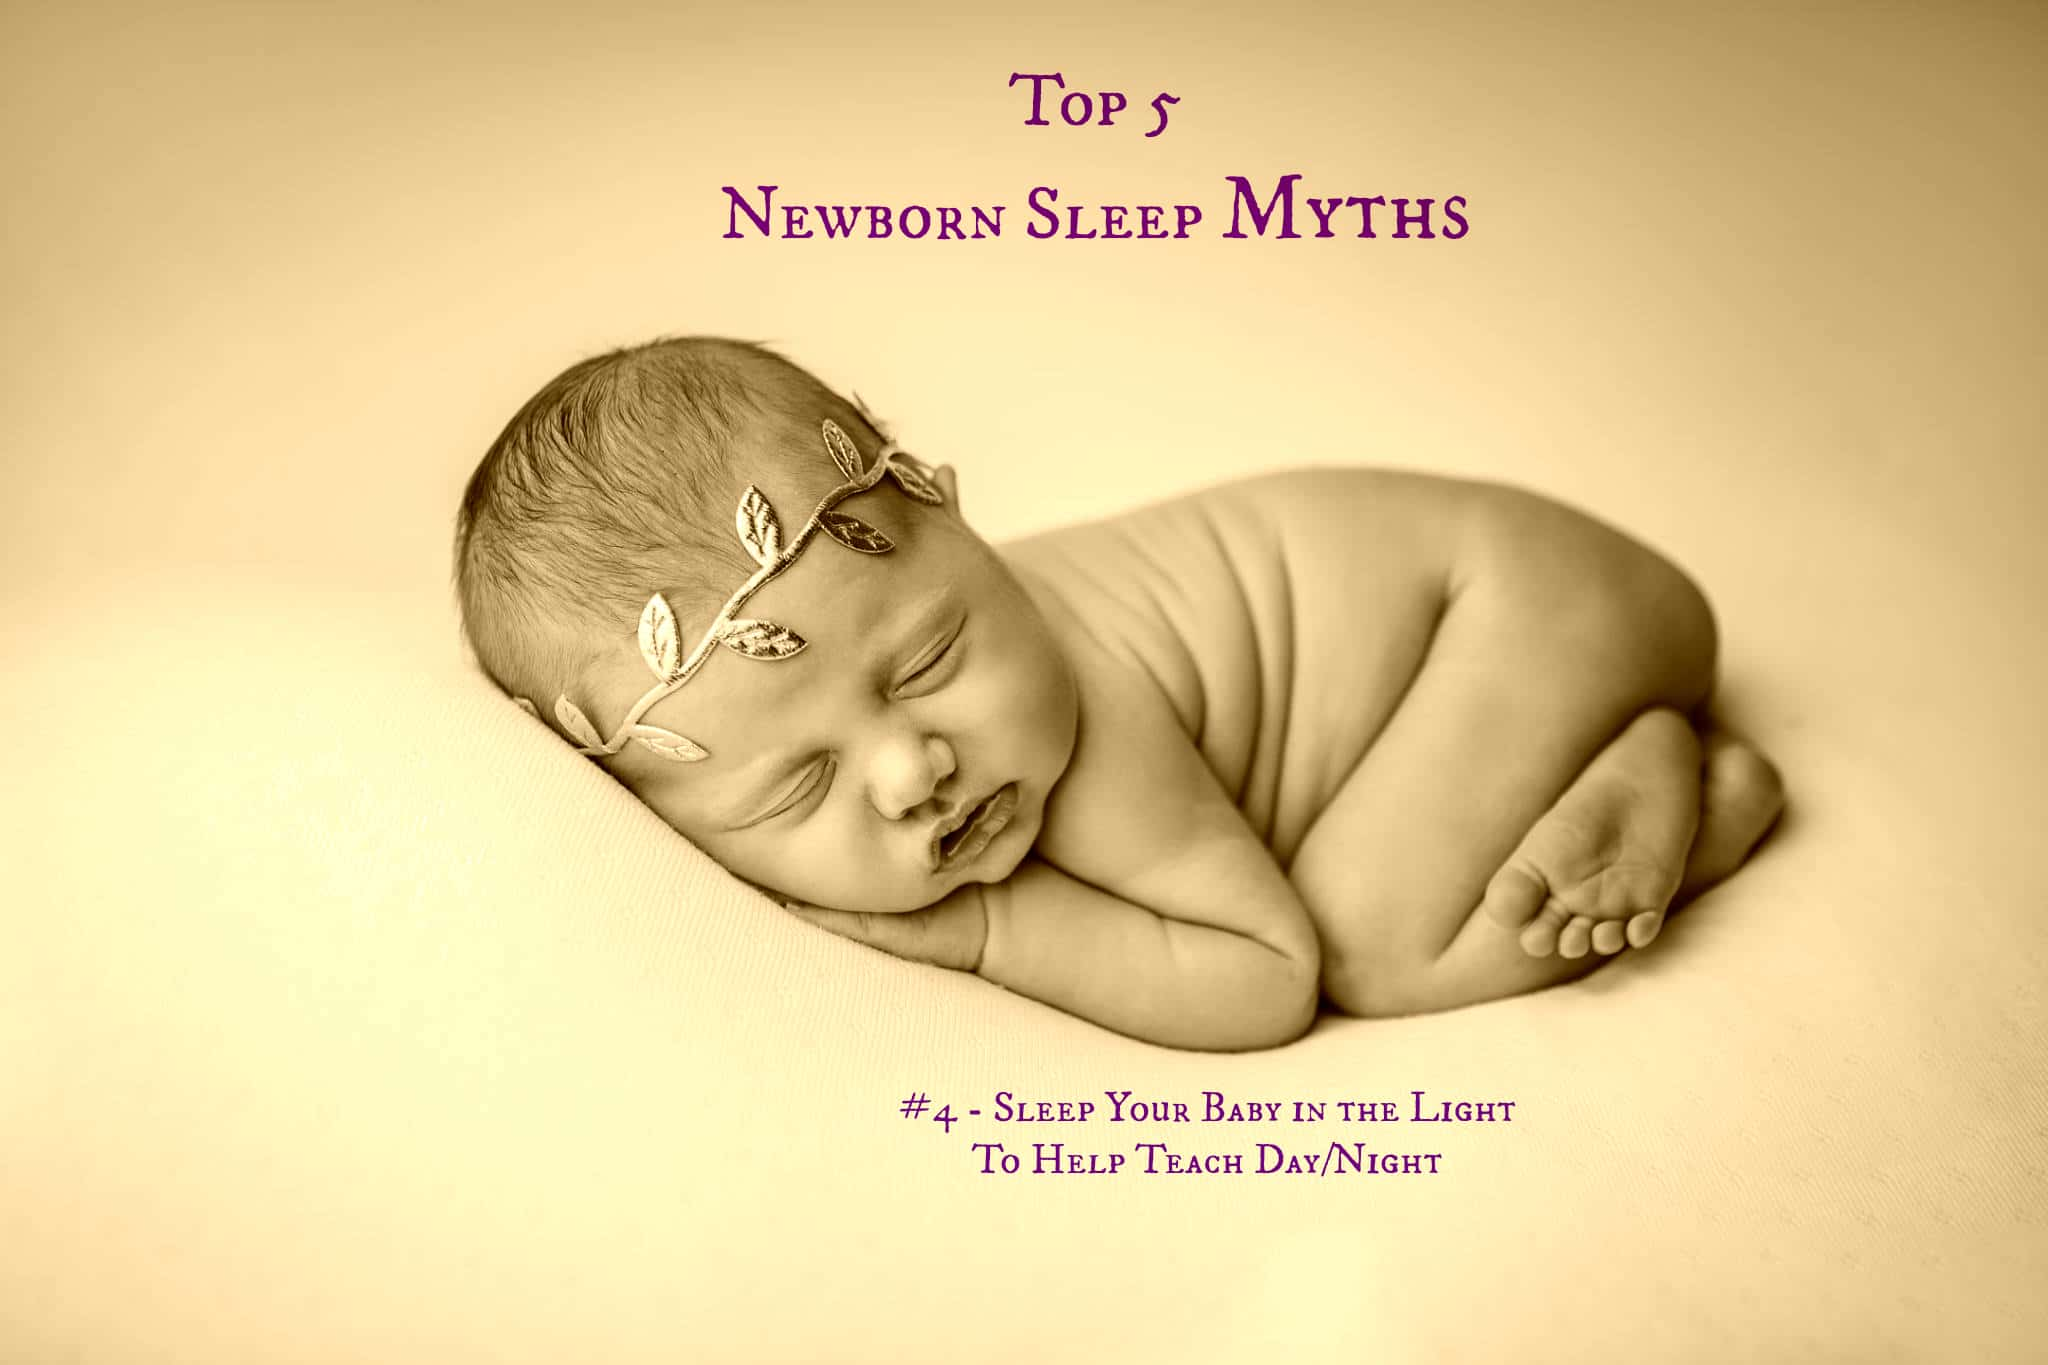 Newborn Sleep Newborn Sleep Myth 4 Sleep Your Newborn In The Light To Teach